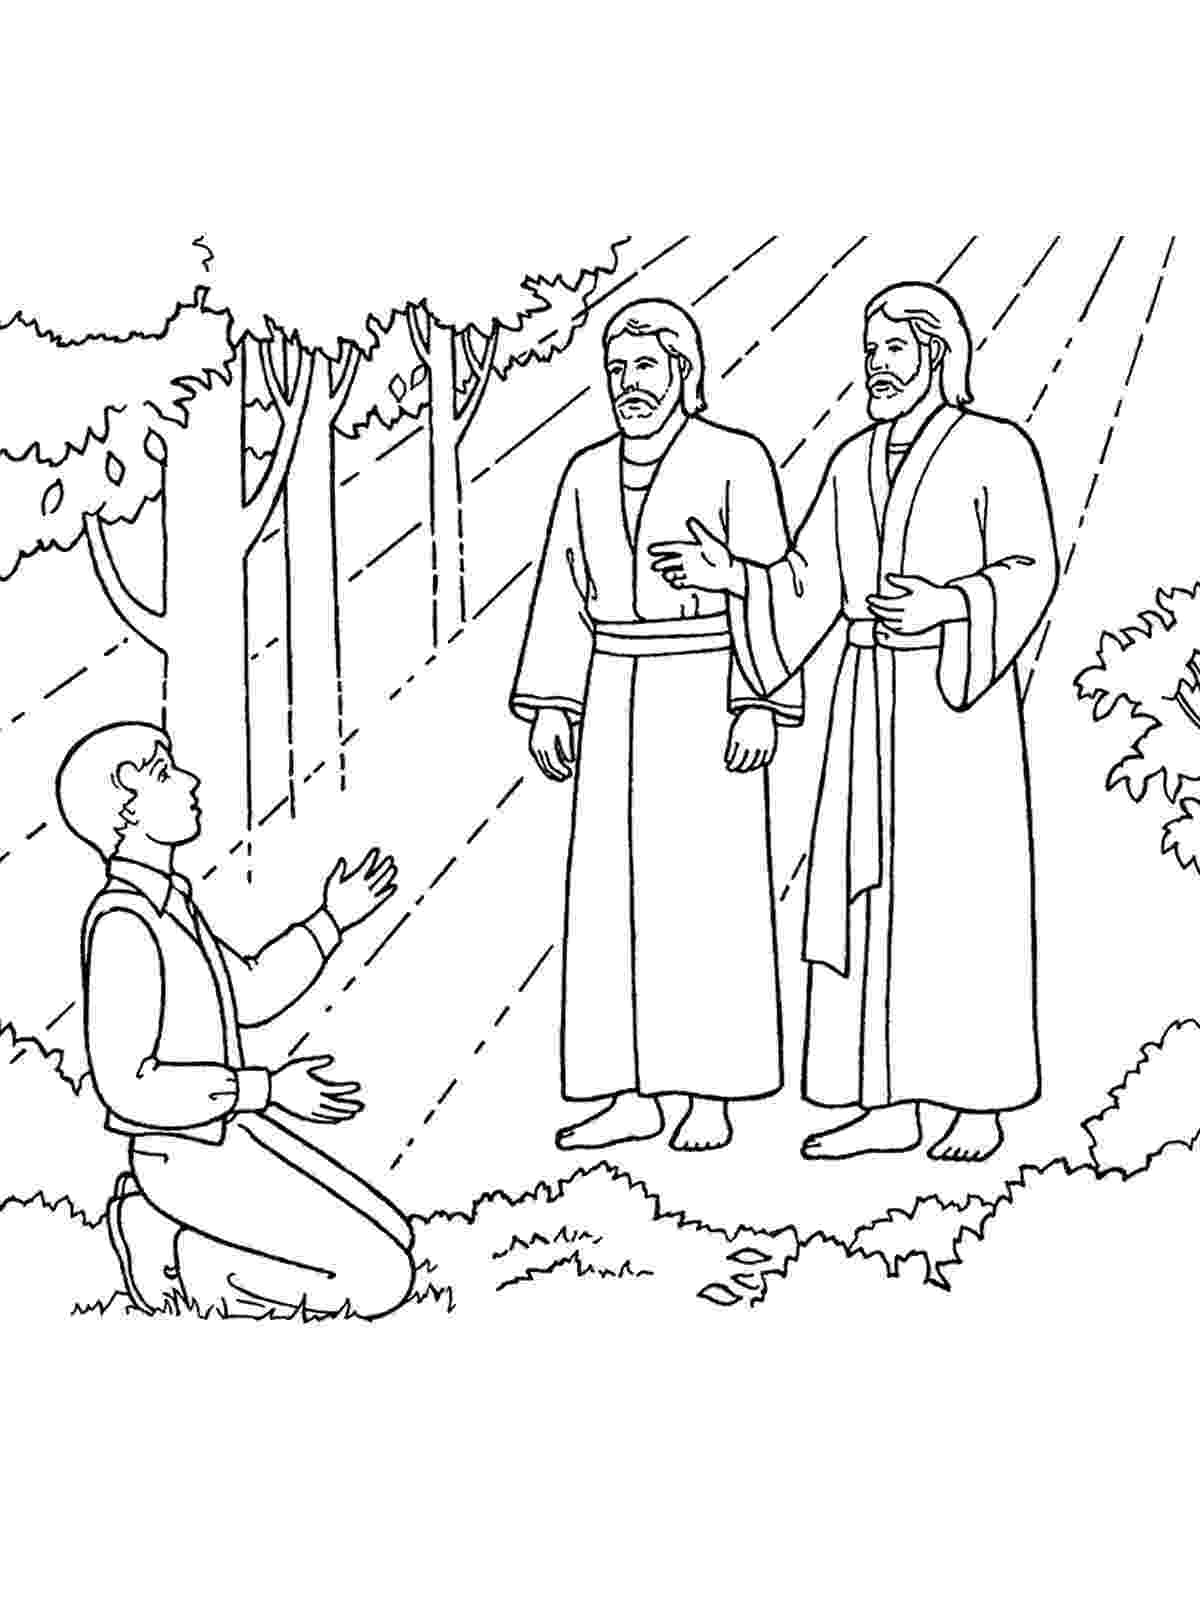 joseph smith coloring pages joseph smith operations coloring page netart coloring smith pages joseph